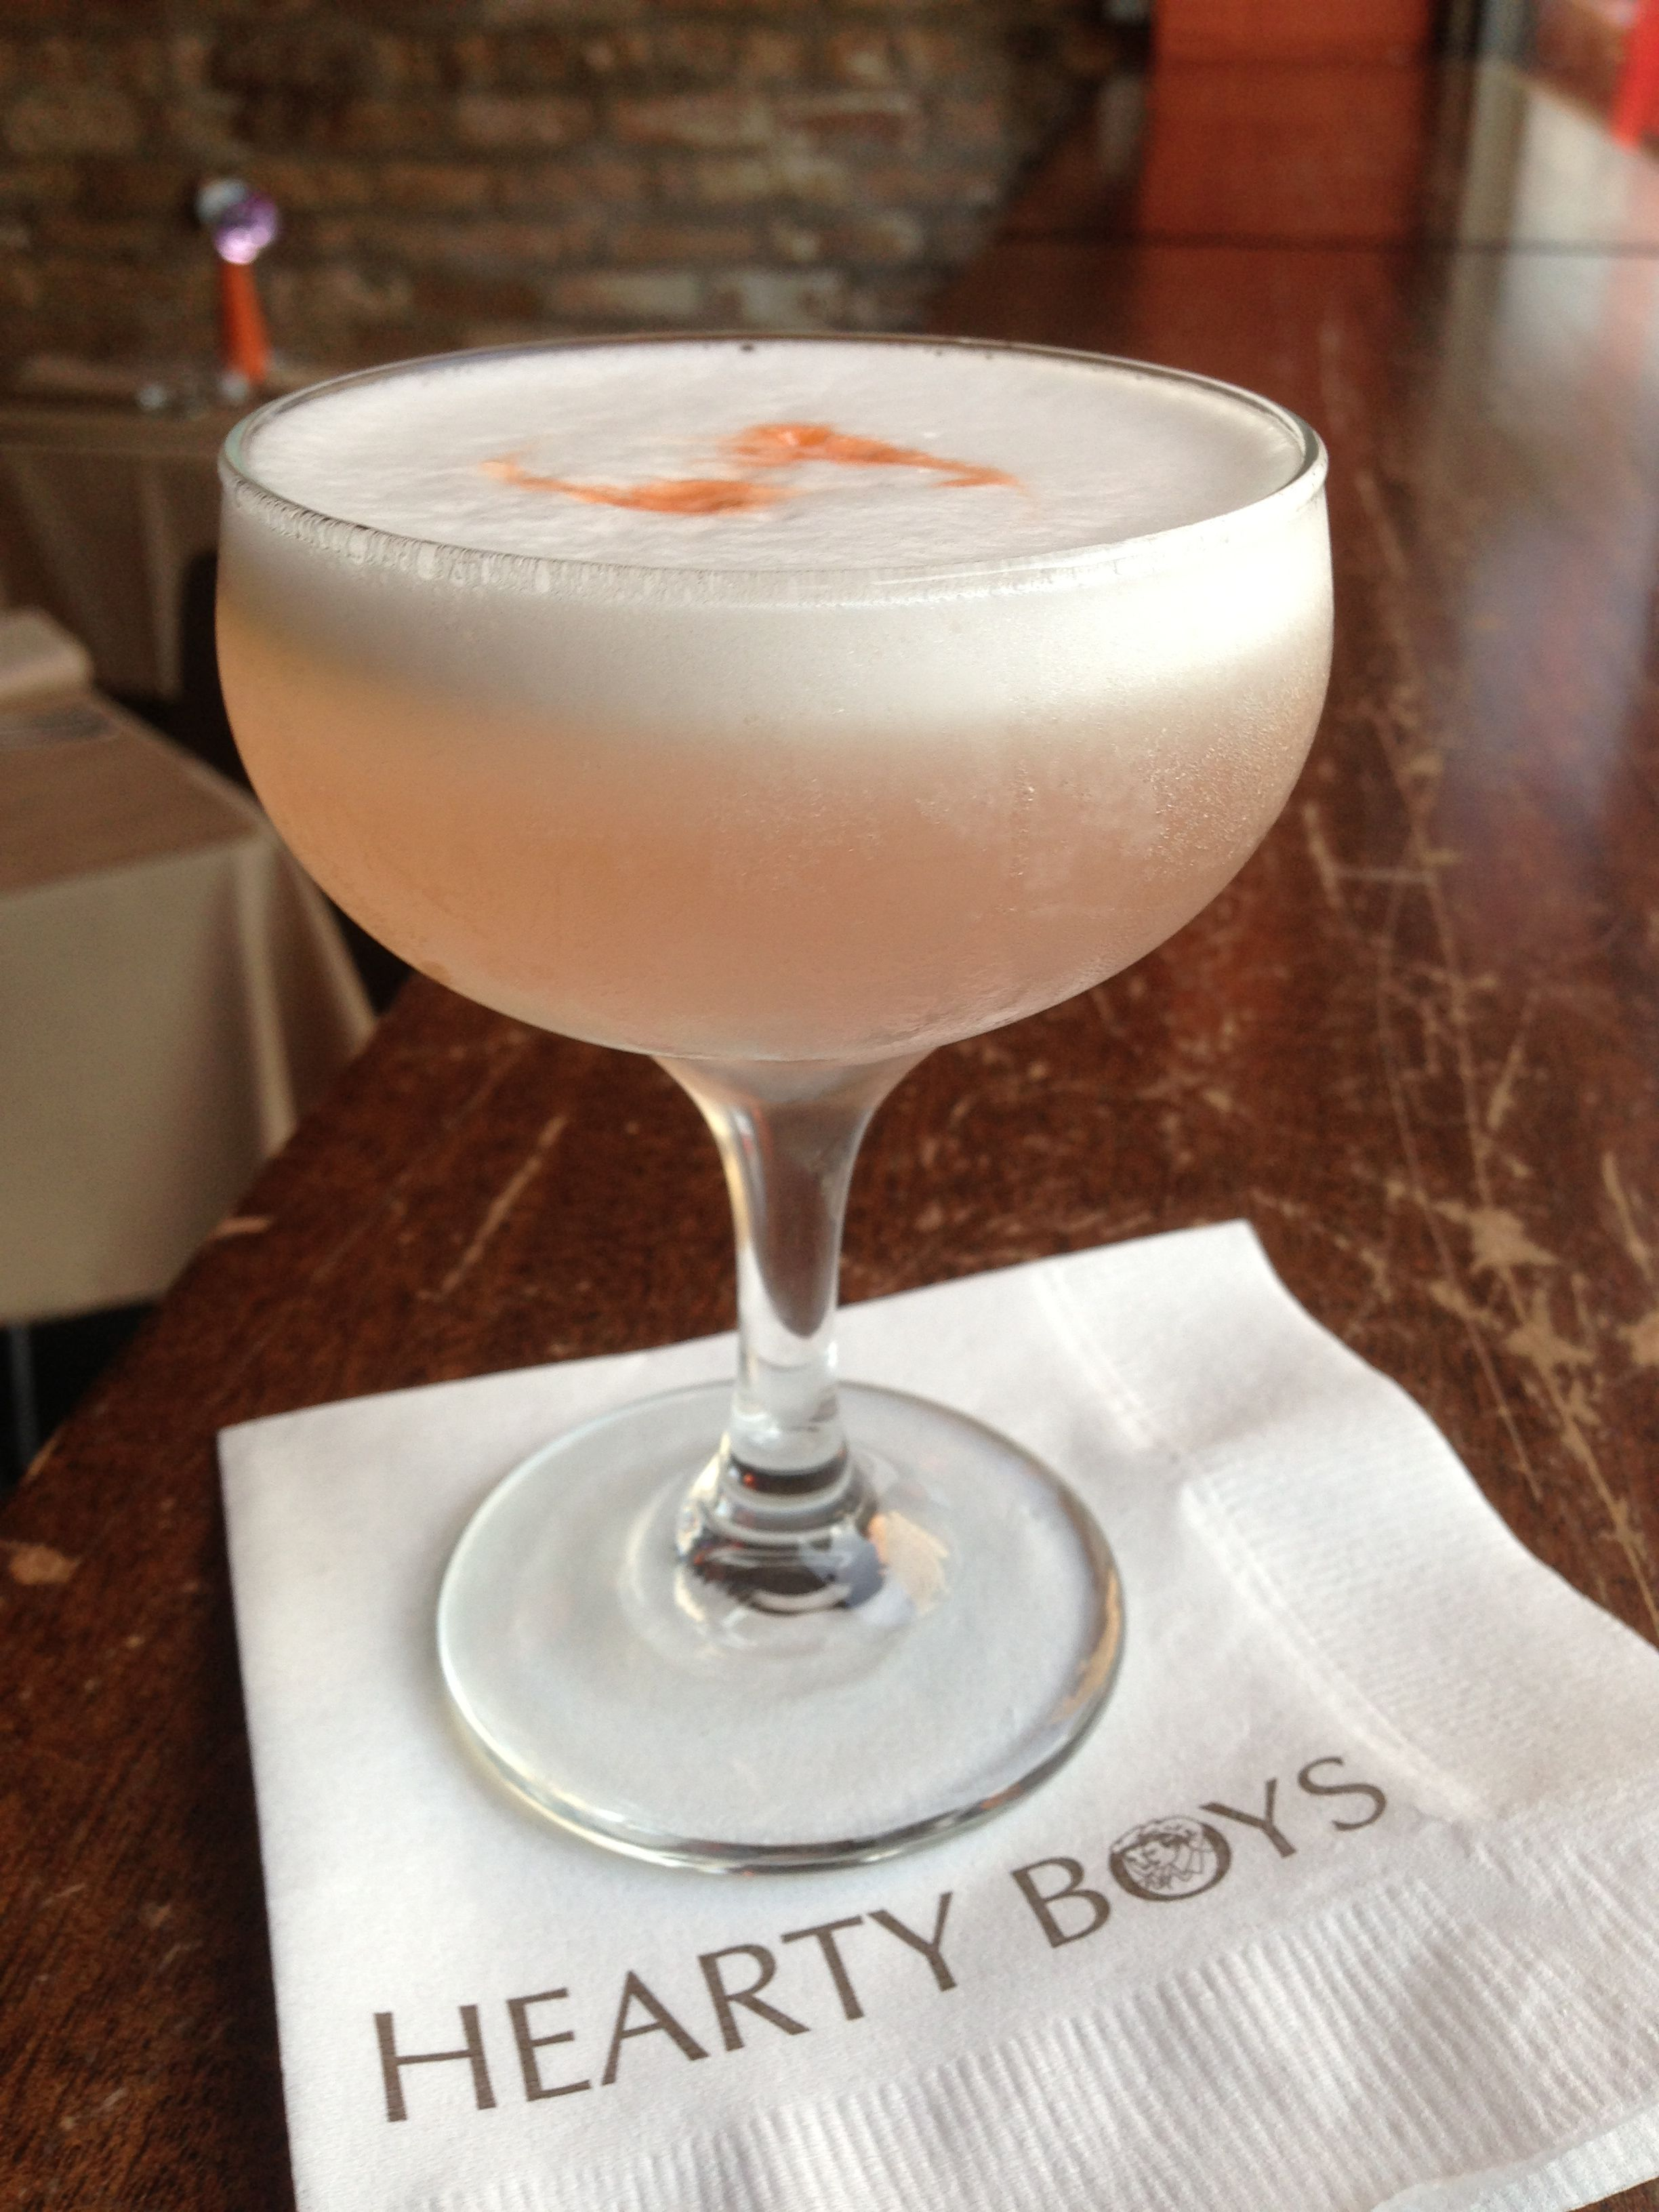 This week's #FarmToBar is a Rhubarb Pisco Sour. Good heavens its delicious. Come in and get one while you still can!